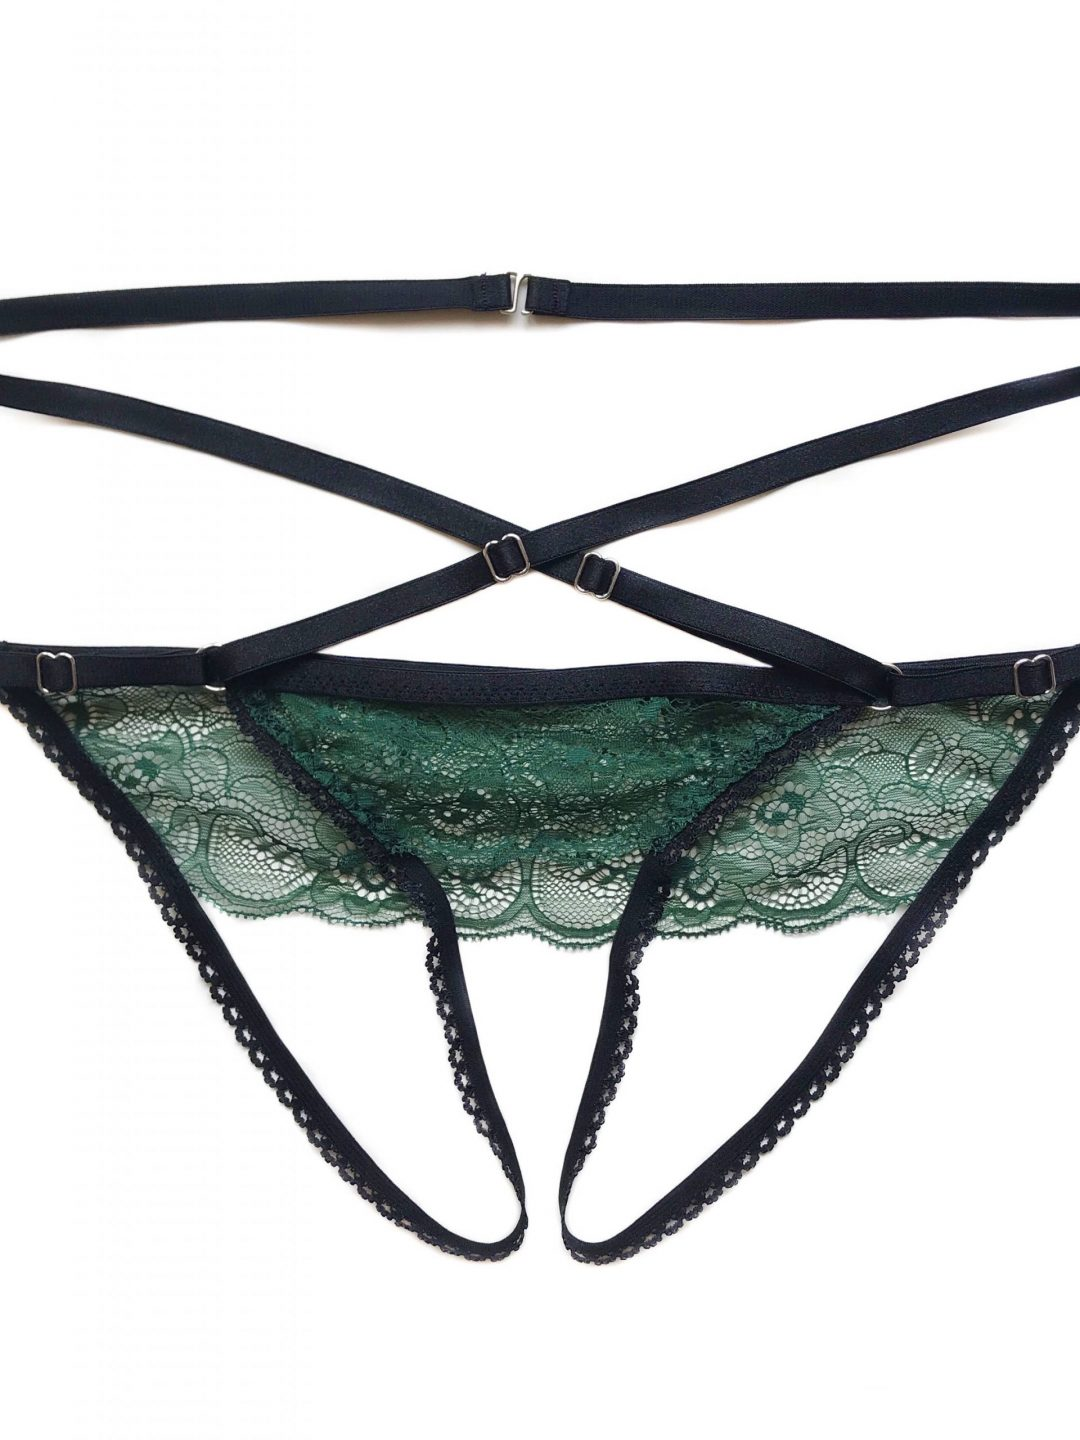 Deep Green Strappy Ouvert Panties; Crotchless Panties ; Bottomless Panties; Sexy Underwear